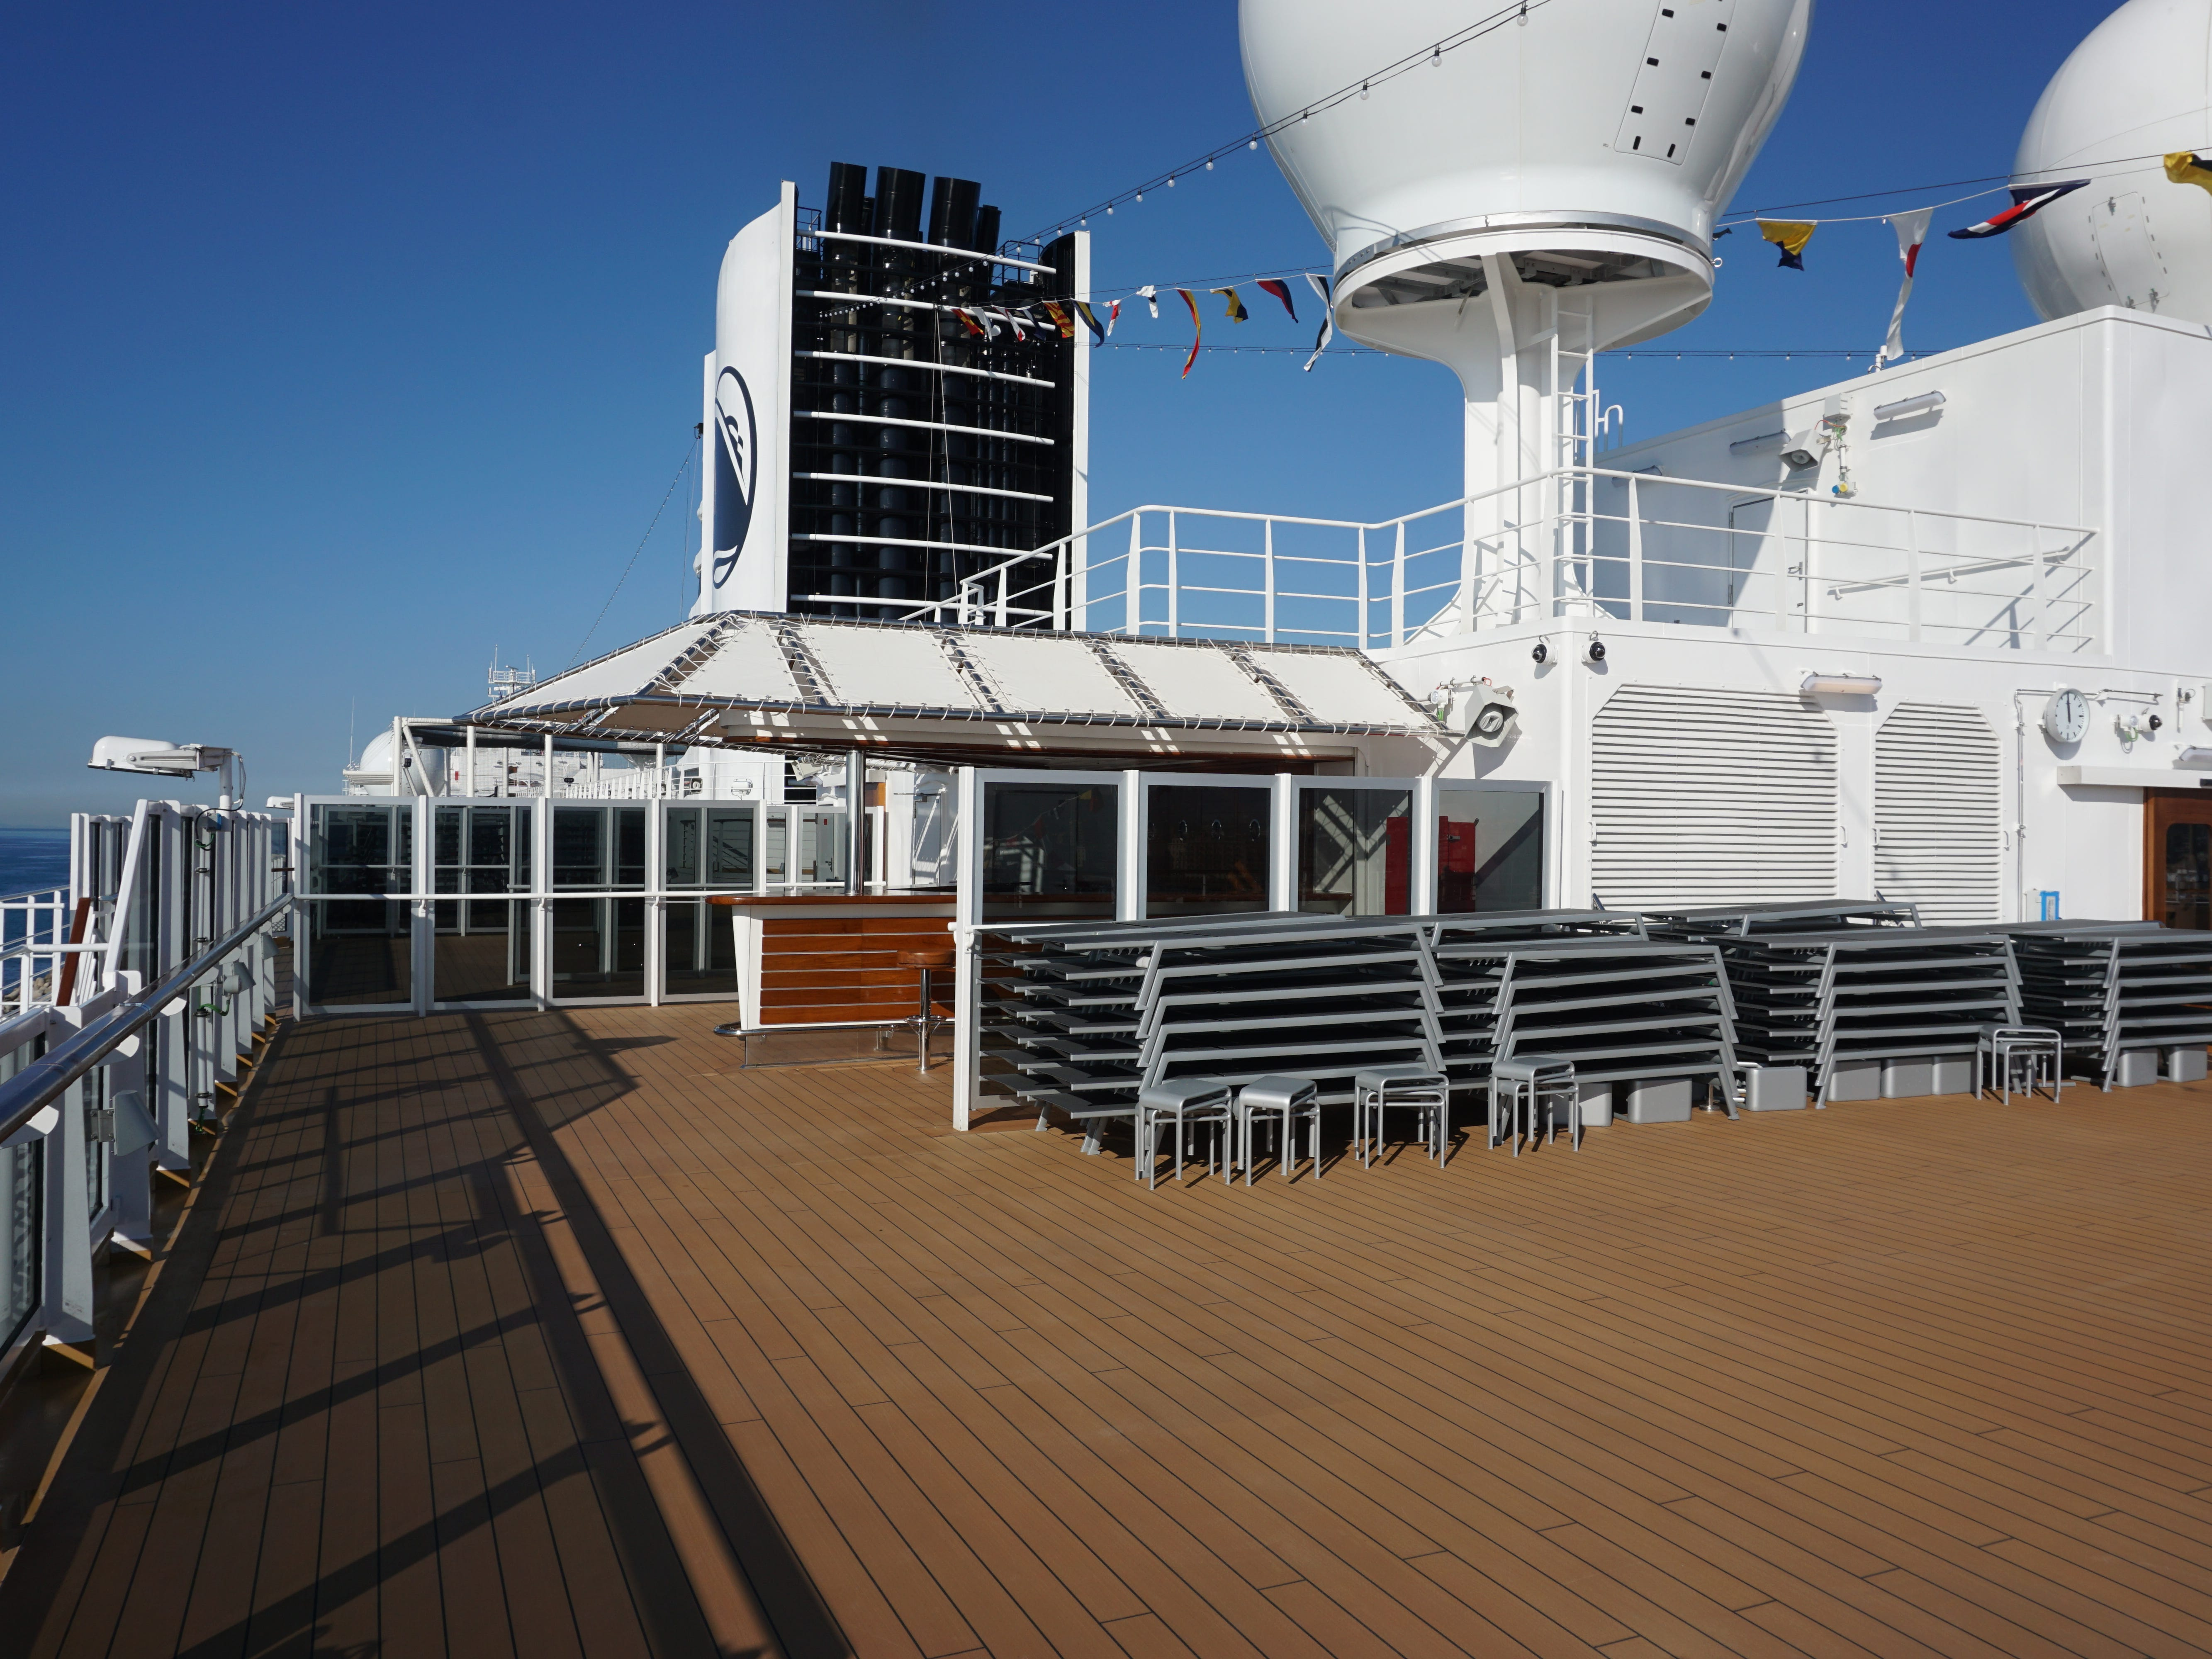 The Sun Bar and more sunning space can be found aft of the Sports Court and funnel on Deck 11.